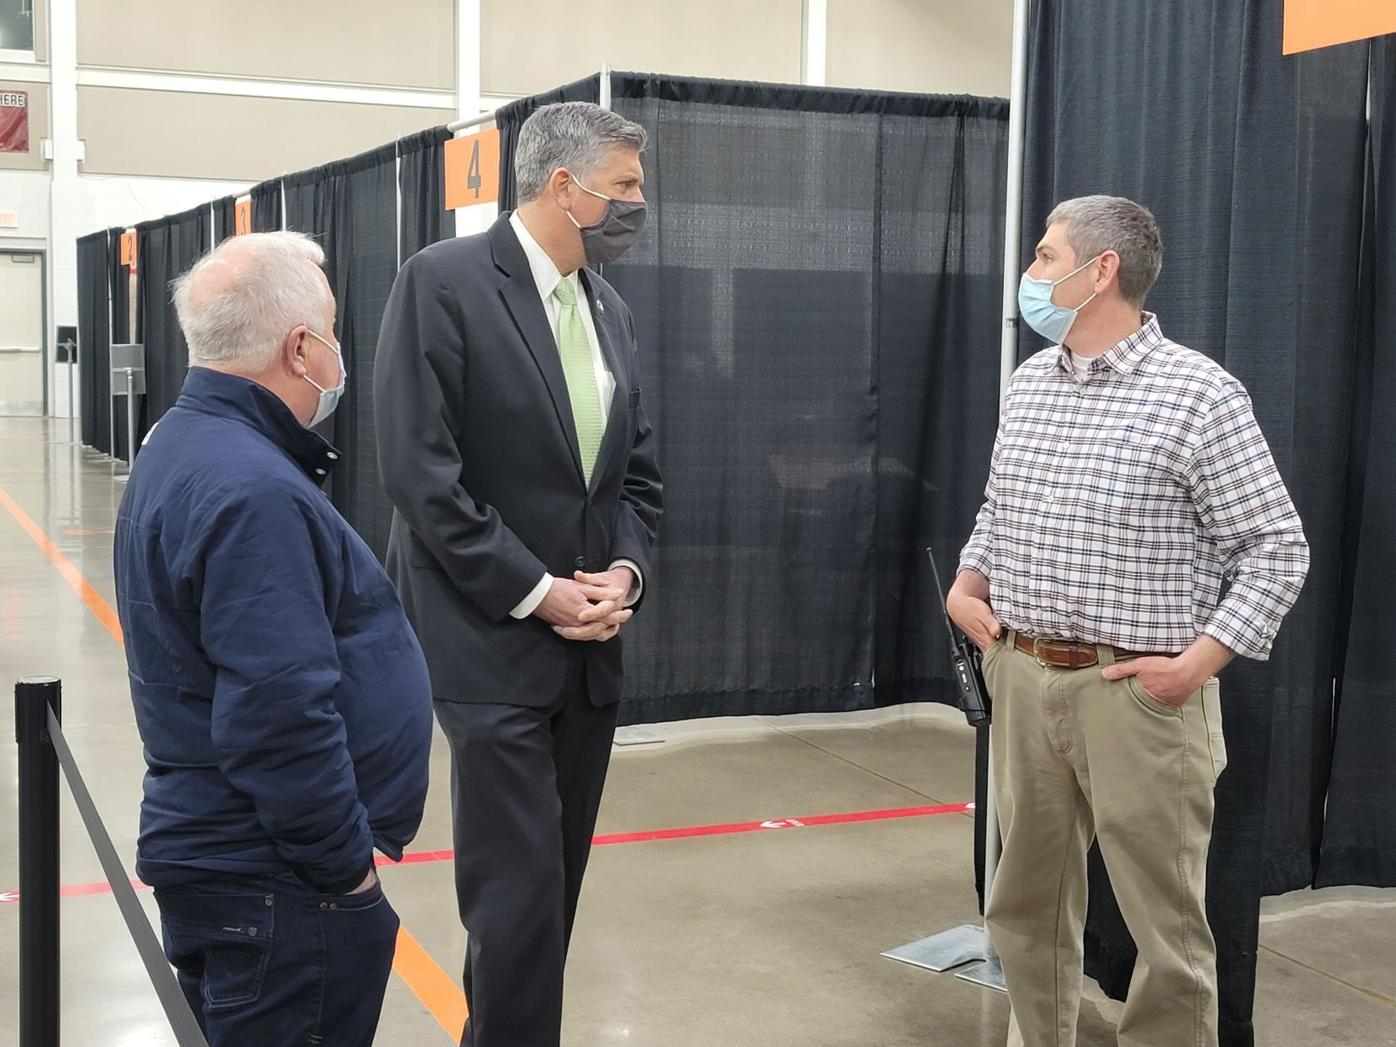 Rep. LaHood tours COVID vaccination facility